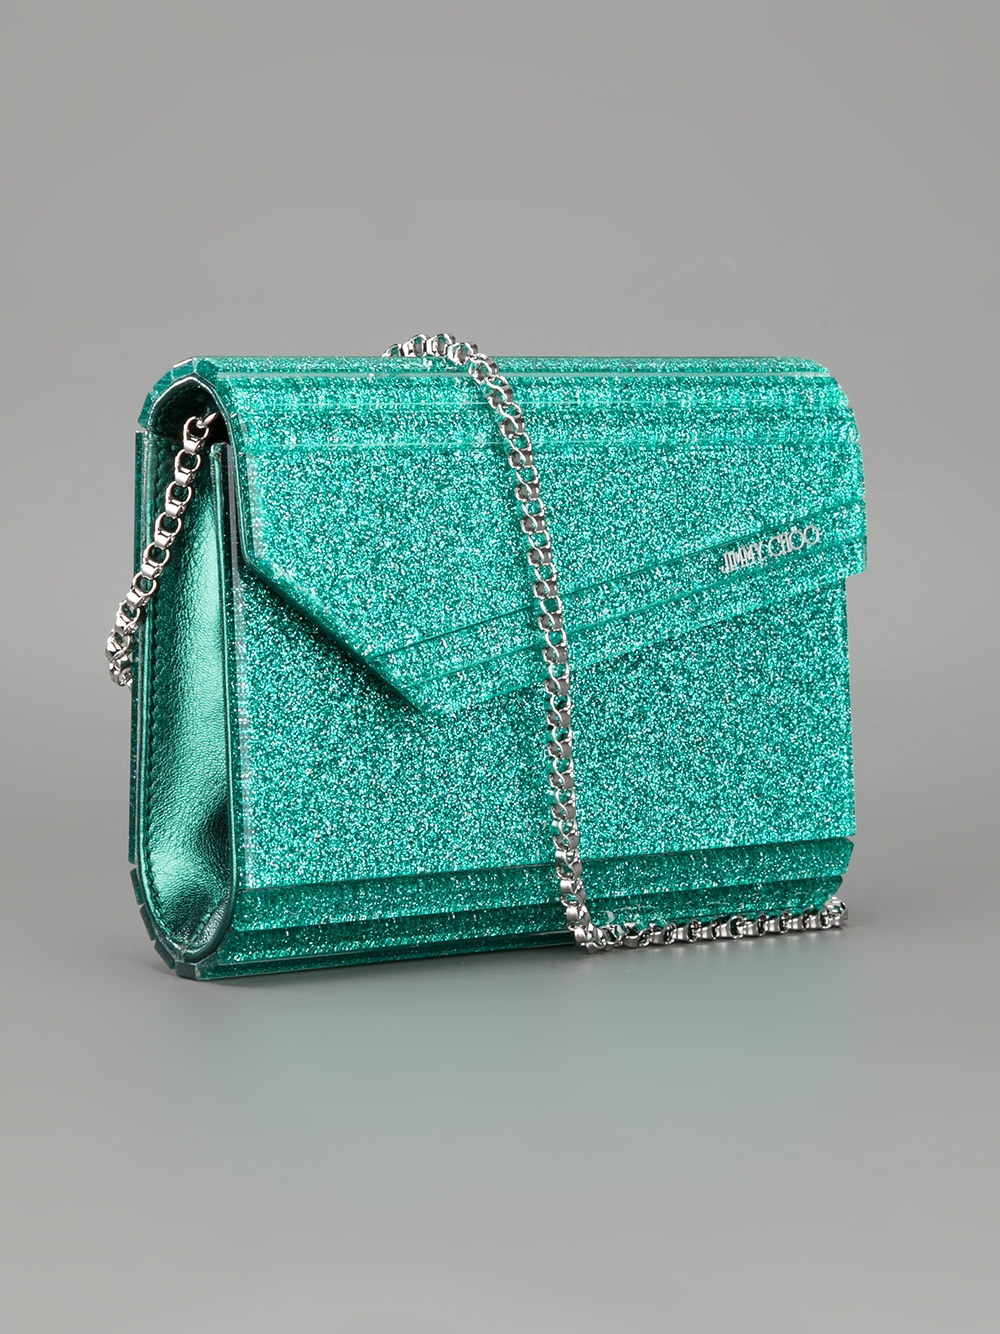 jimmy choo candy clutch bag in green emerald lyst. Black Bedroom Furniture Sets. Home Design Ideas